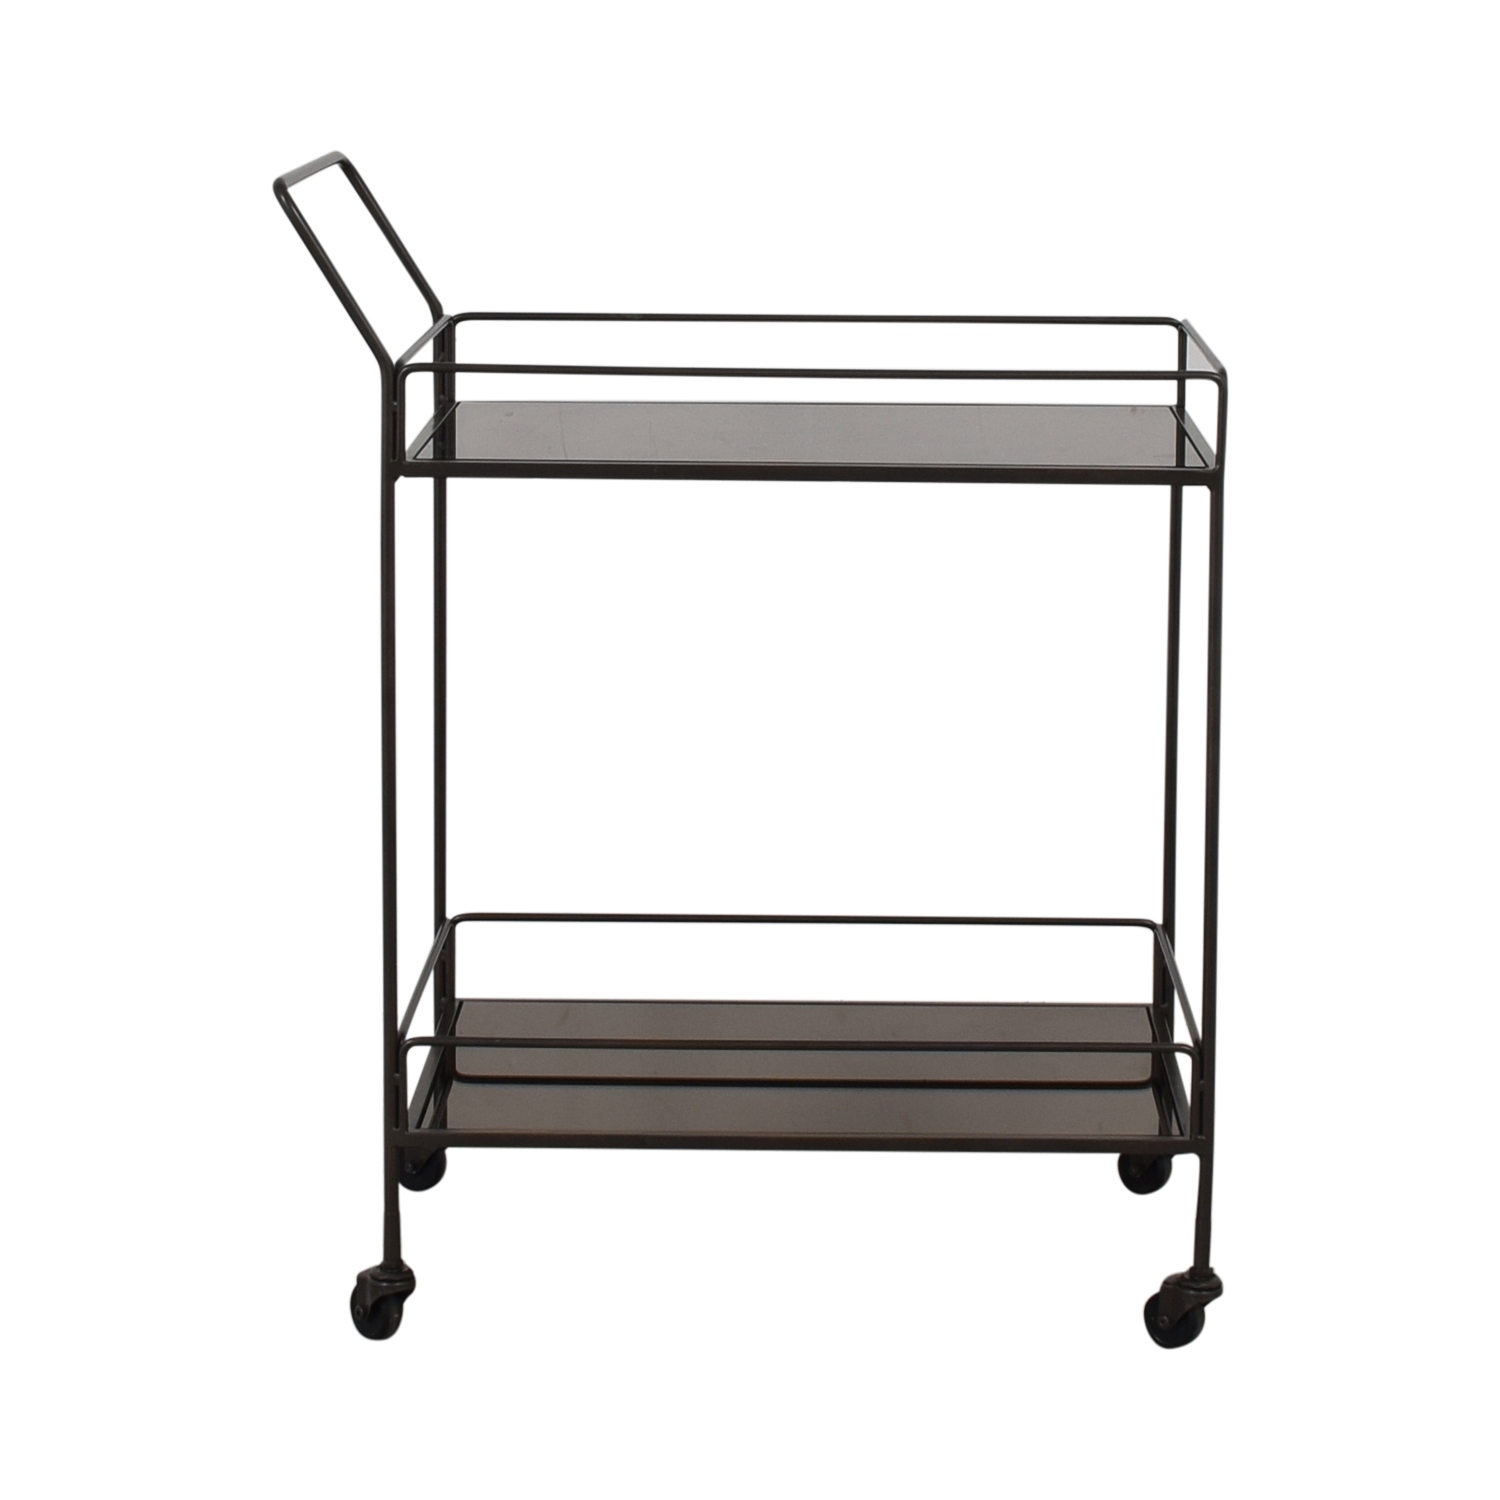 shop Crate & Barrel Crate & Barrel Bar Cart online